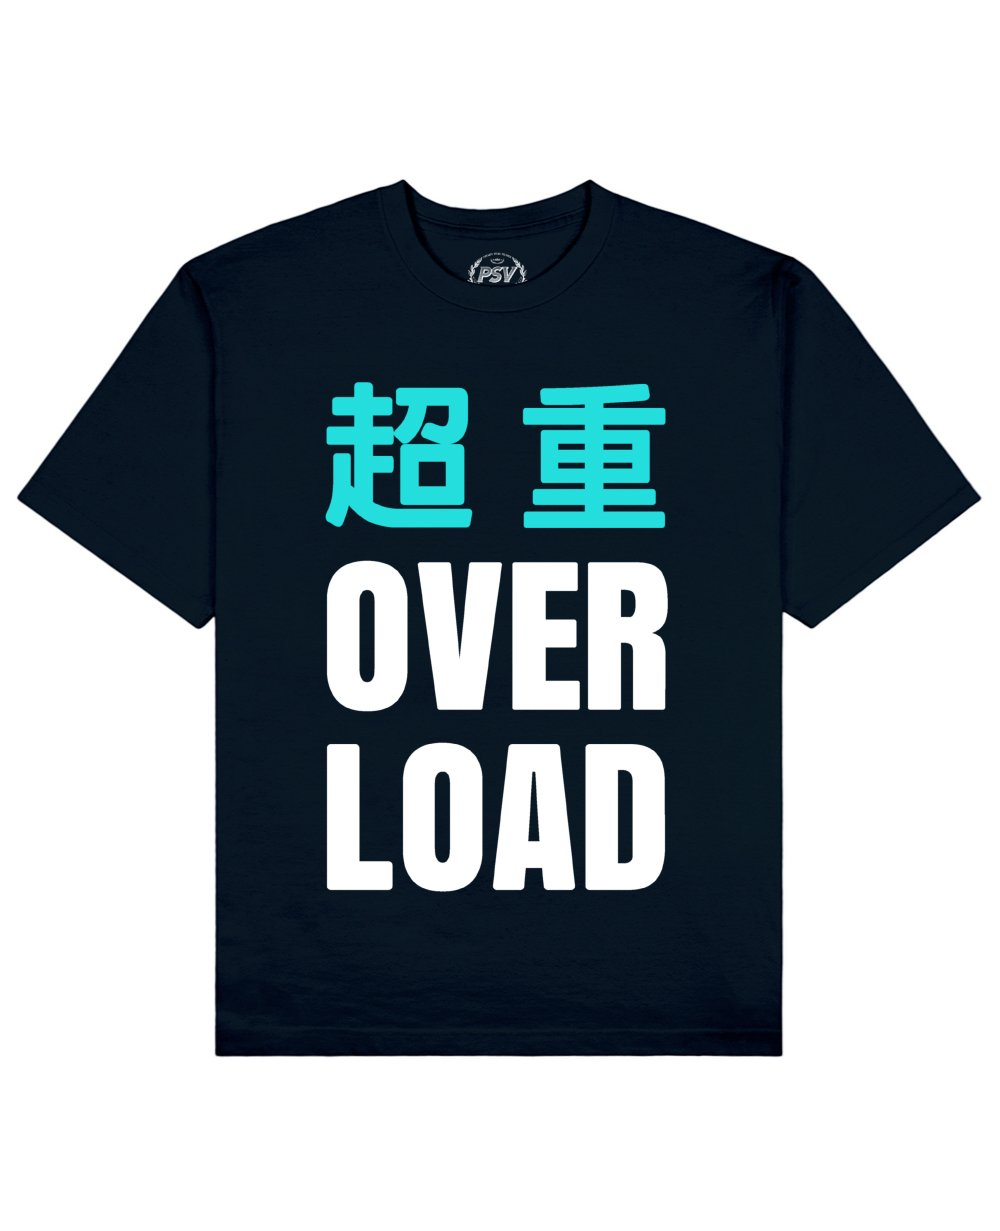 Overload Print T-Shirt in Navy - T-Shirts - PSV - BRANMA